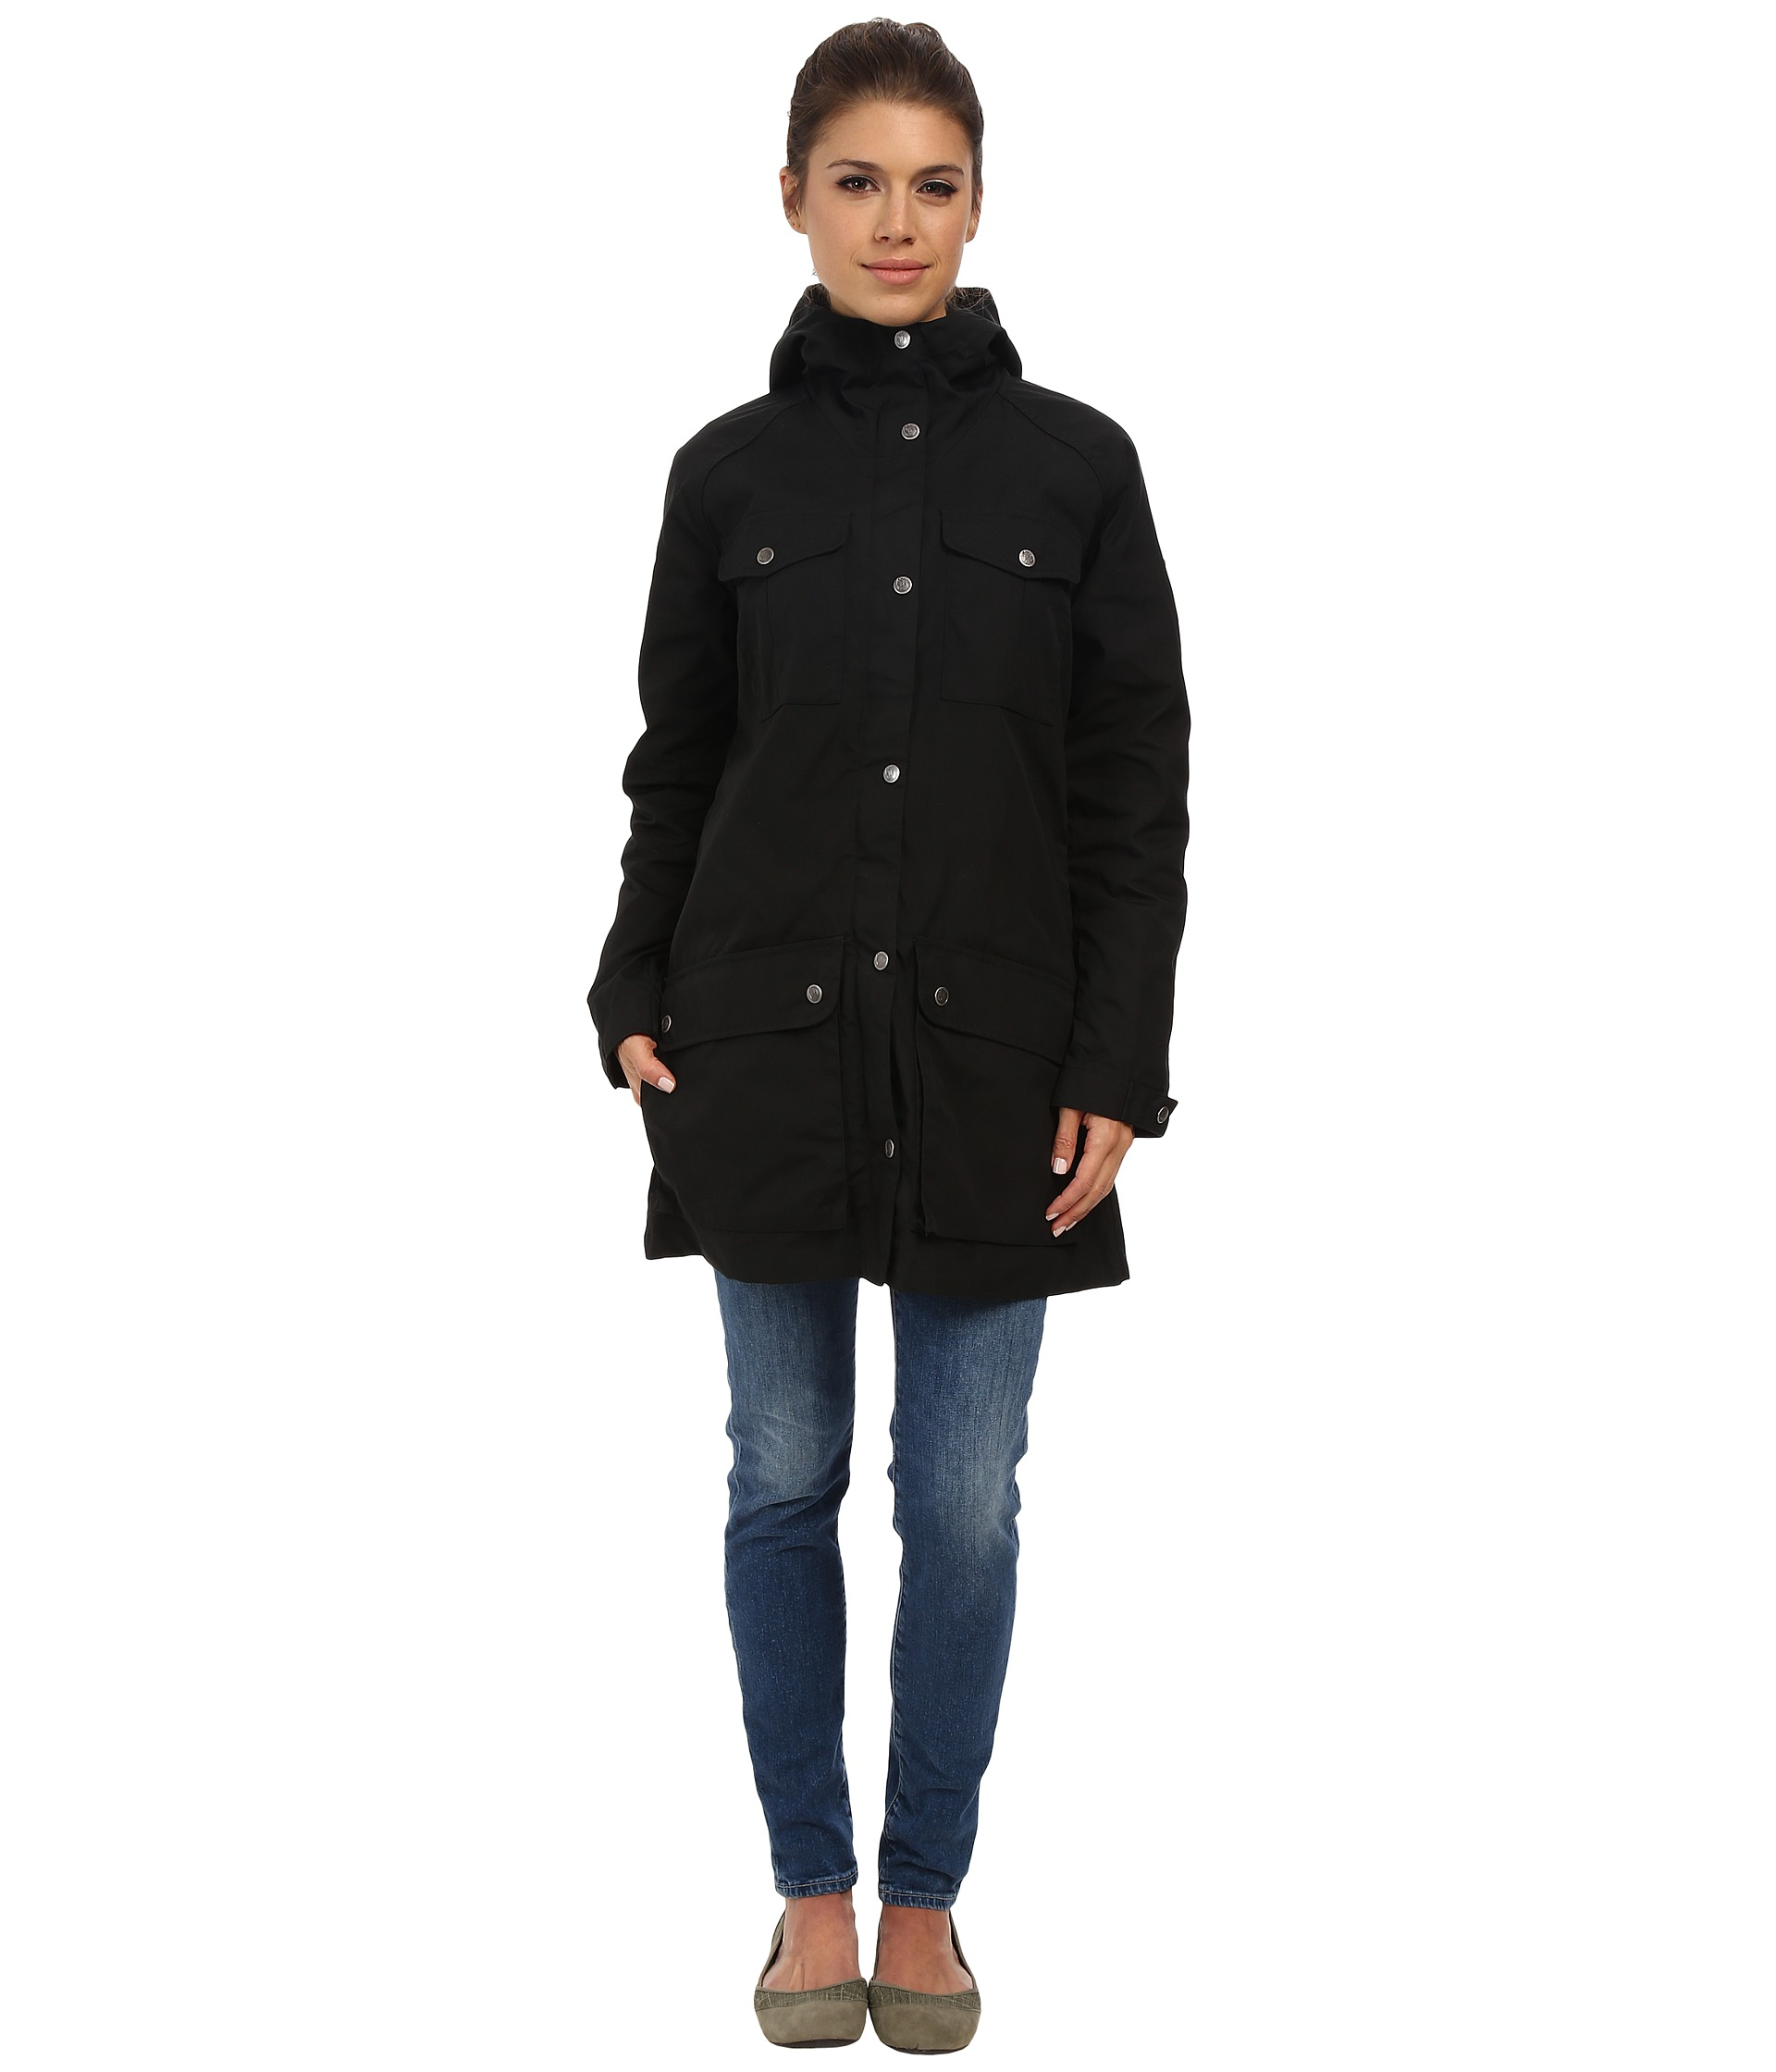 Fjallraven Greenland Parka Light in Black | Lyst